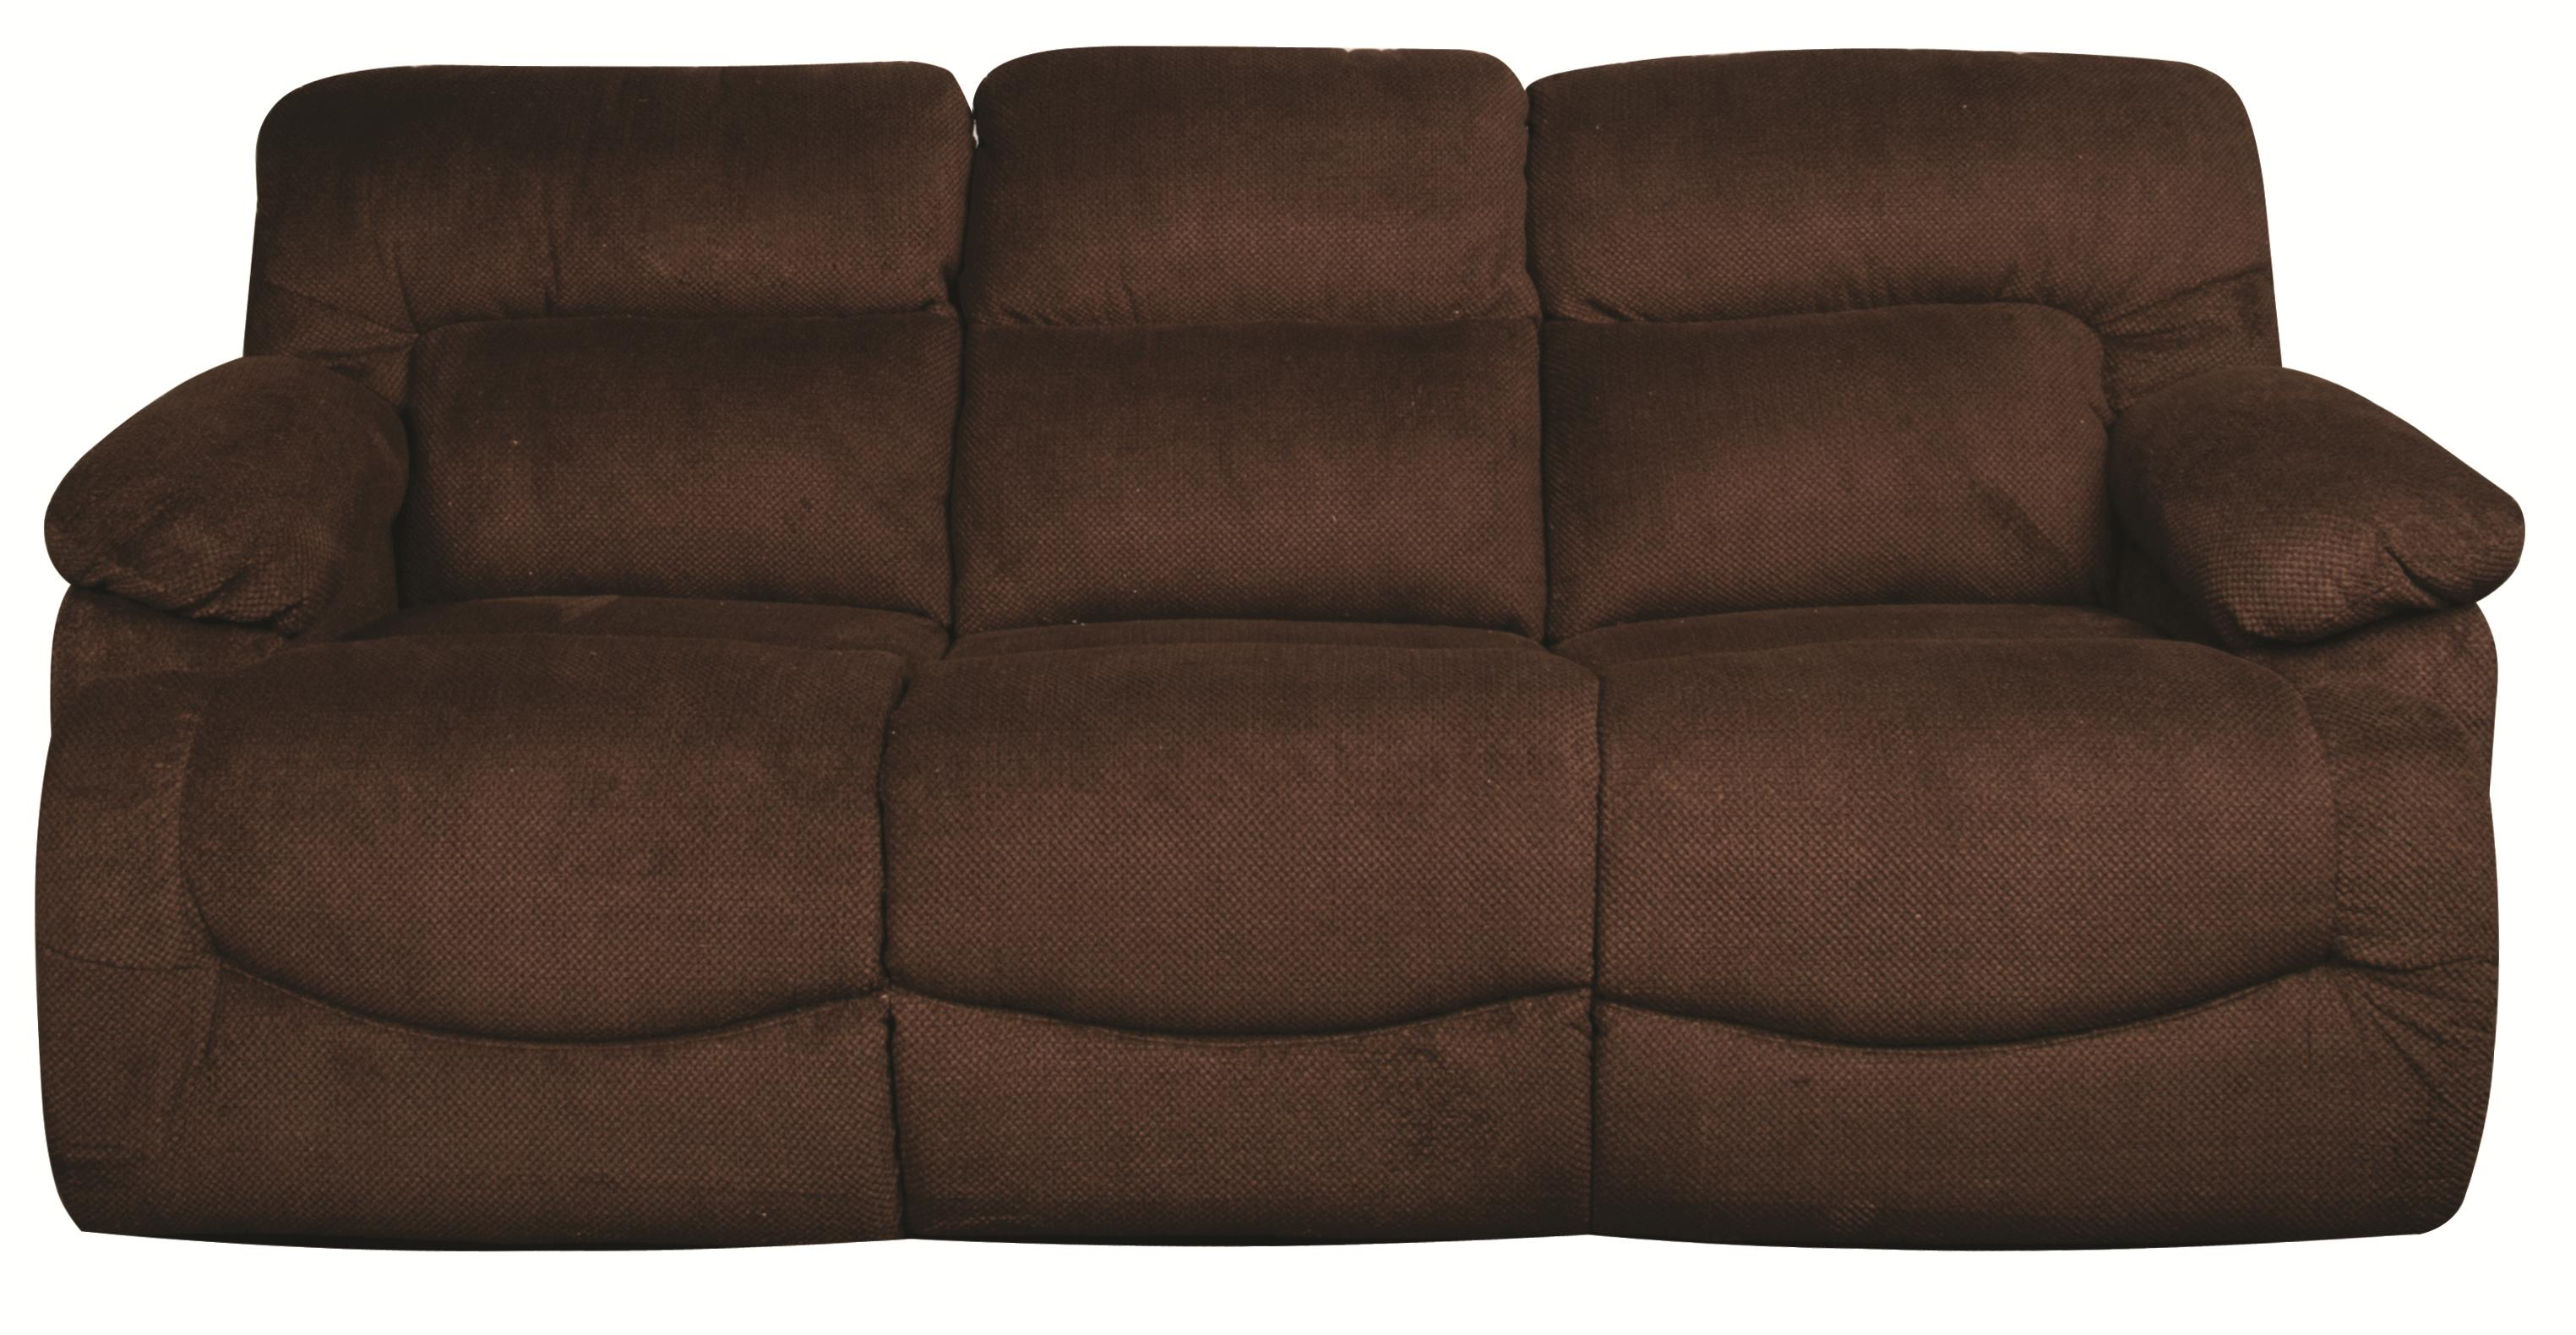 La-Z-Boy Asher Asher Reclining Sofa - Item Number: 102854204